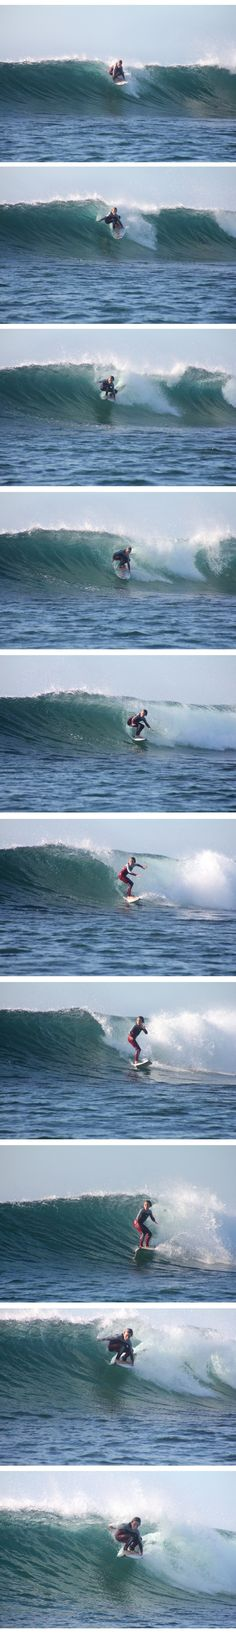 Tube riding by 9 years old lko surf team rider